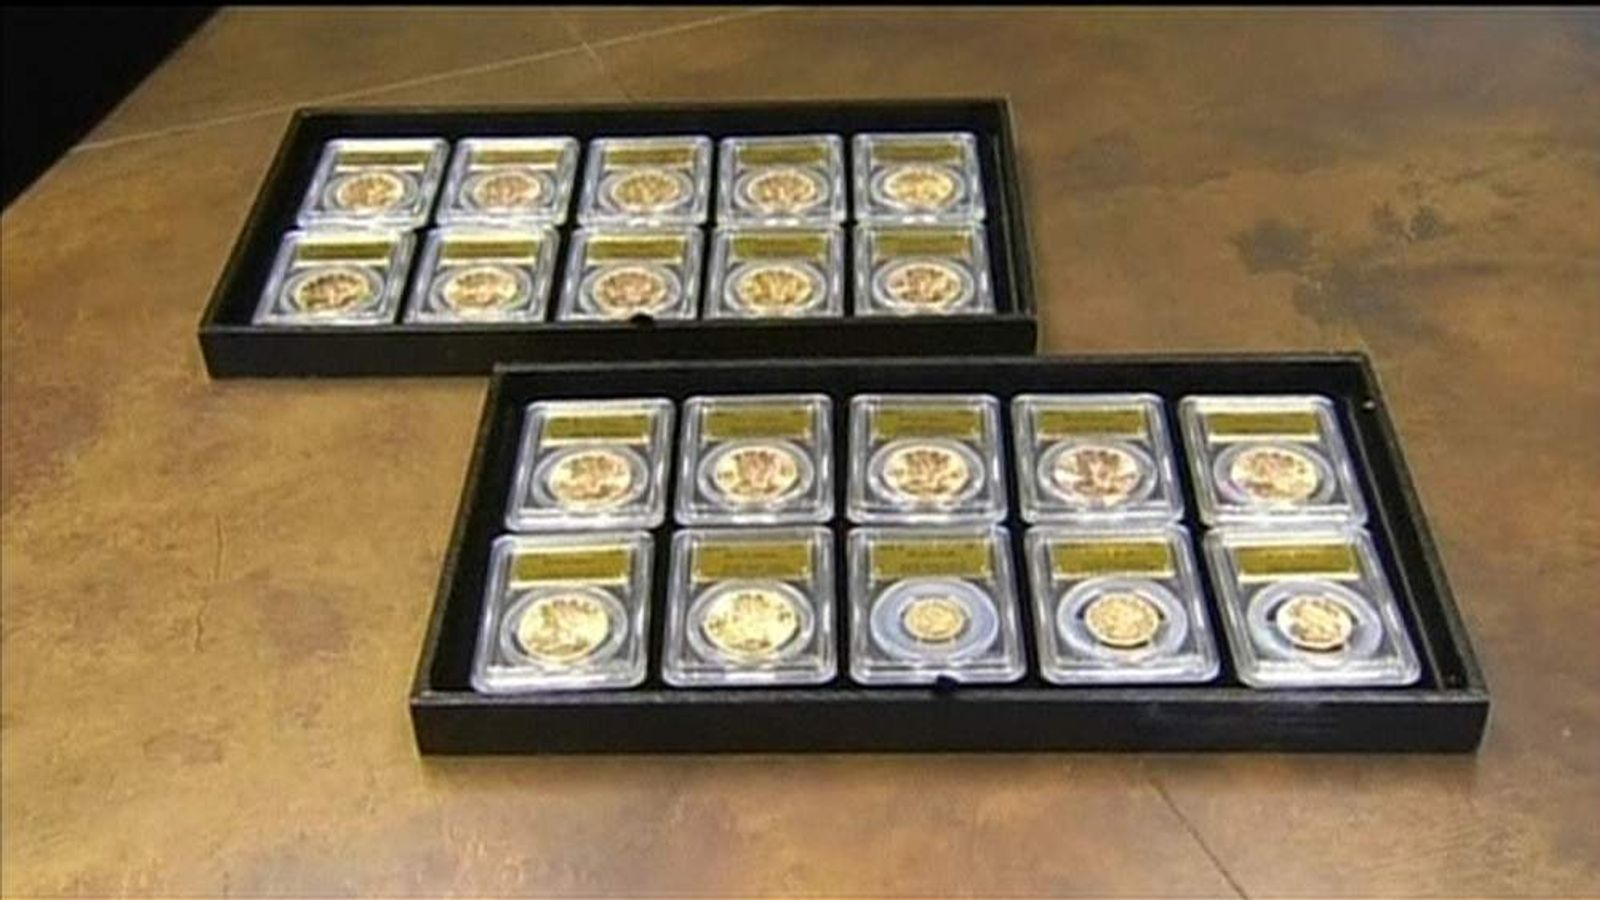 Hoard of gold coins found buried in California back yard